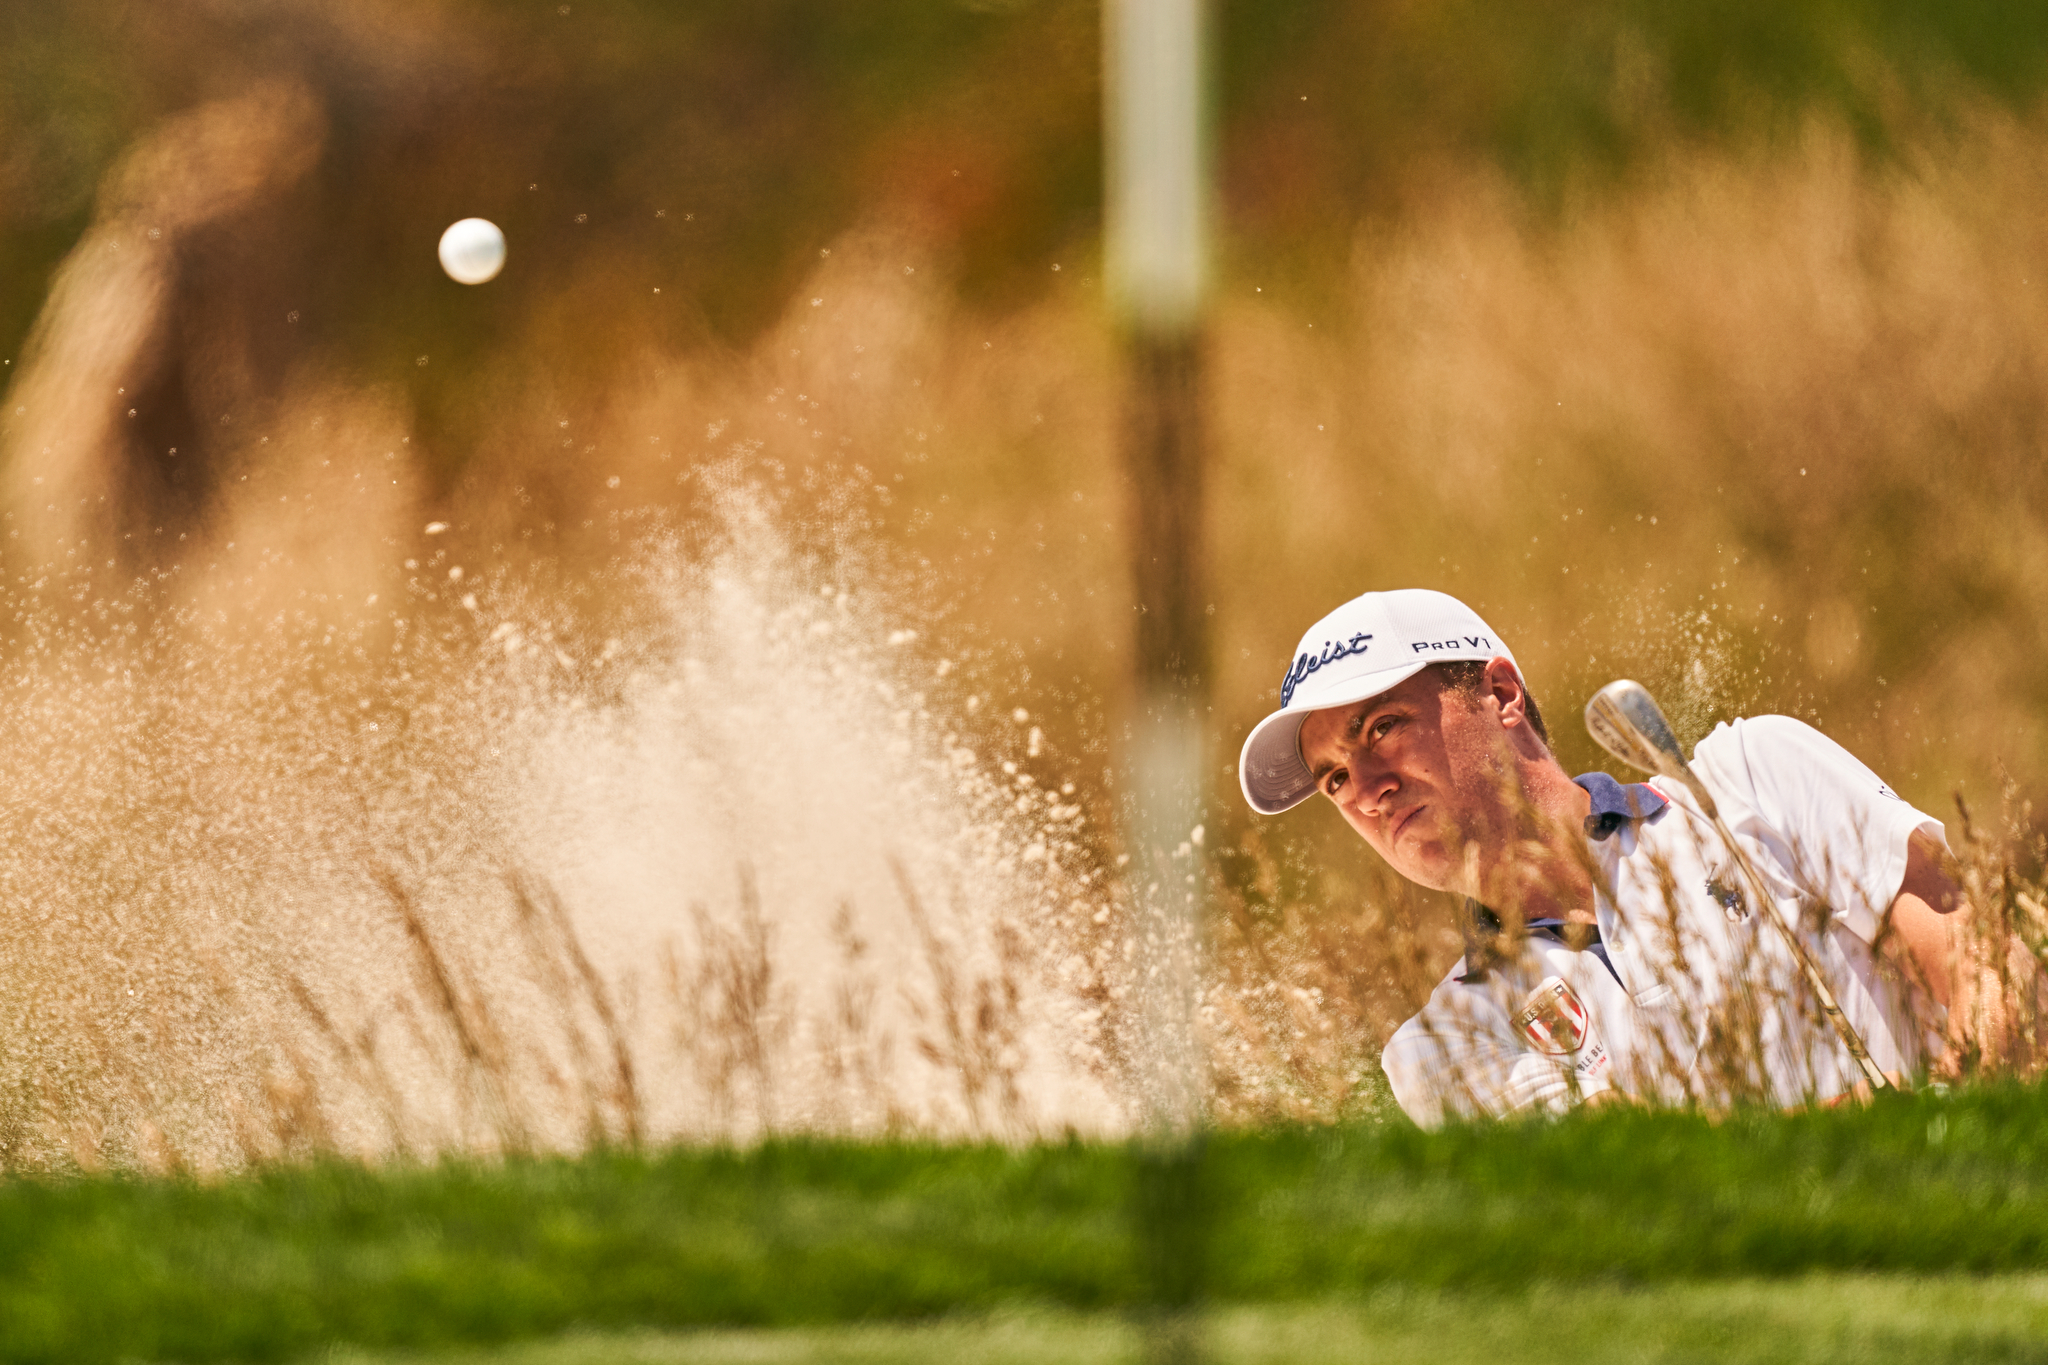 Justin Thomas, Tuesday practice round.  Sony A9, Sony FE 600mm f4 GM-OSS.